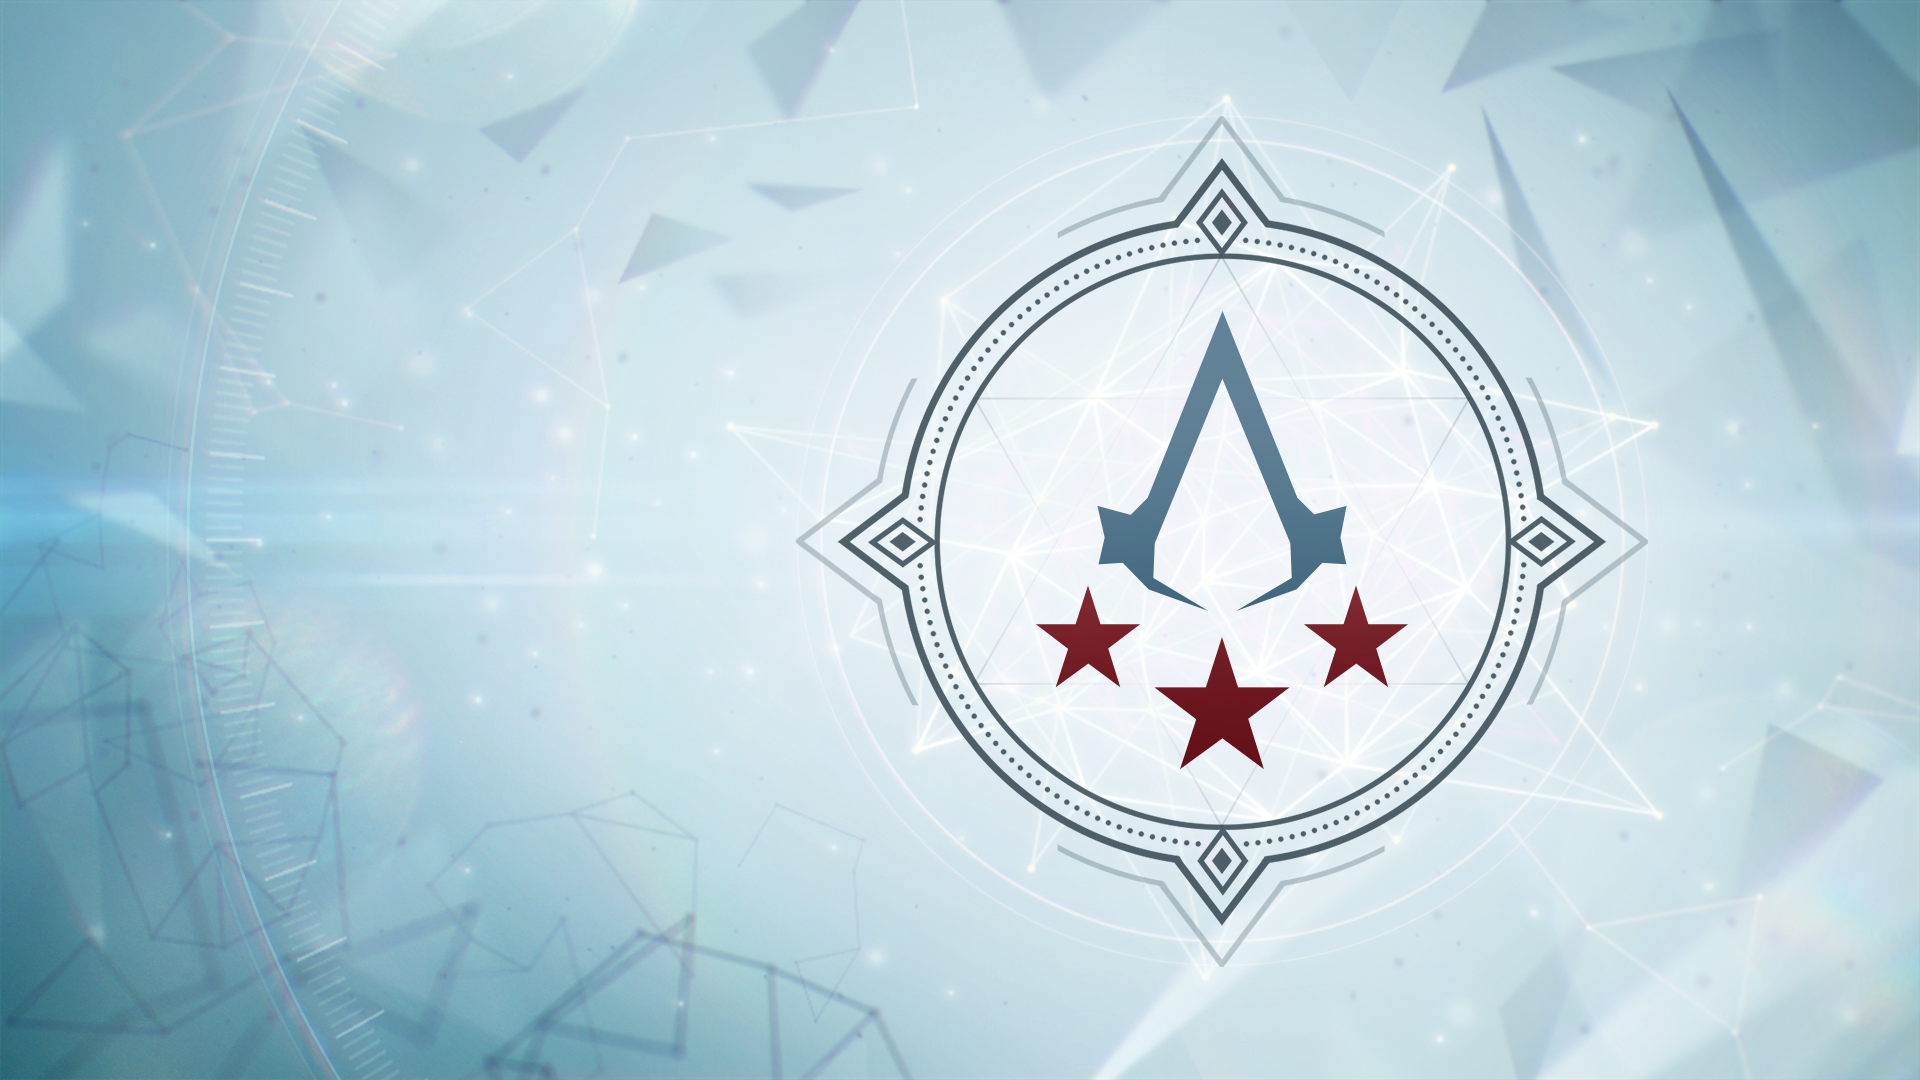 AC3 | A Wolf in Sheep's Clothing